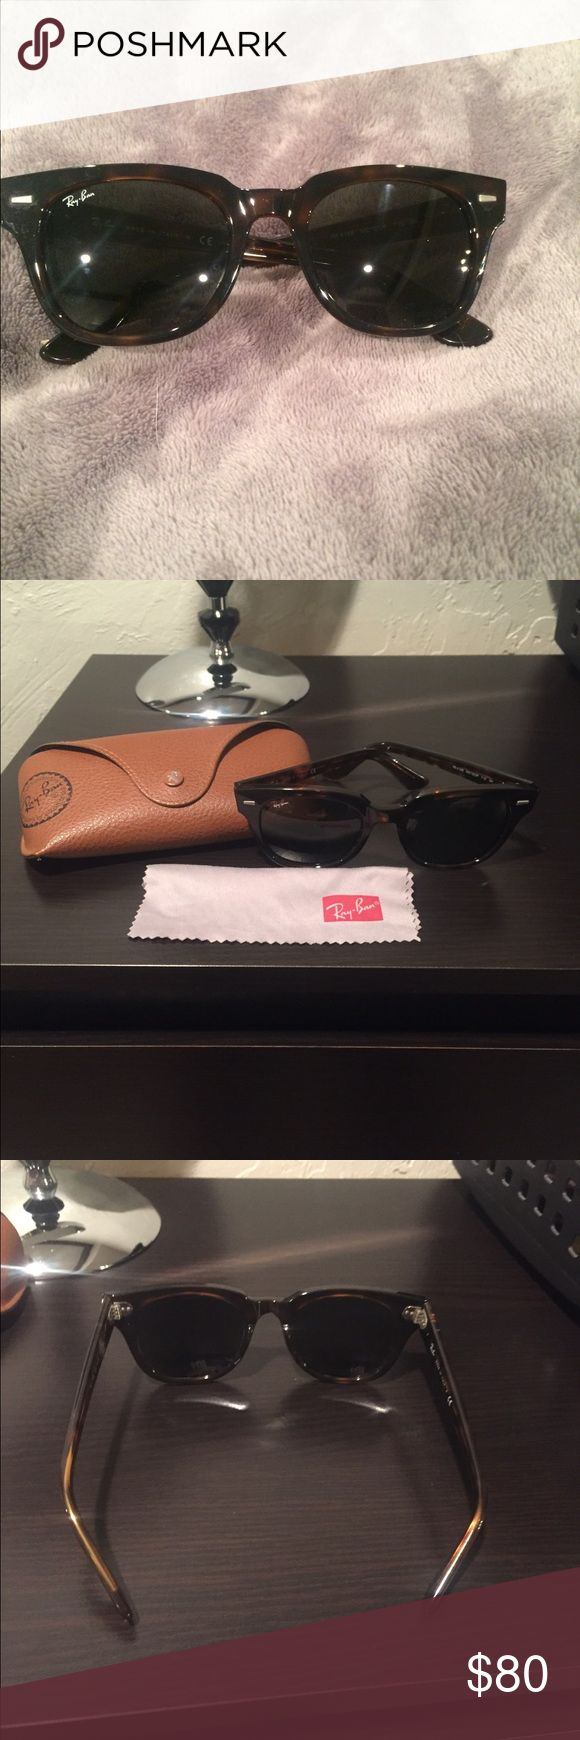 Ray Ban Meteor Wayfarer RB 4168 710 3N RB 4168 Meteor, PRE OWNED, comes with case and cloth, normal wear throughout, some scratches on lenses and frames, marks shown in pictures, minor imperfections. Any questions, ask! Ray-Ban Accessories Sunglasses